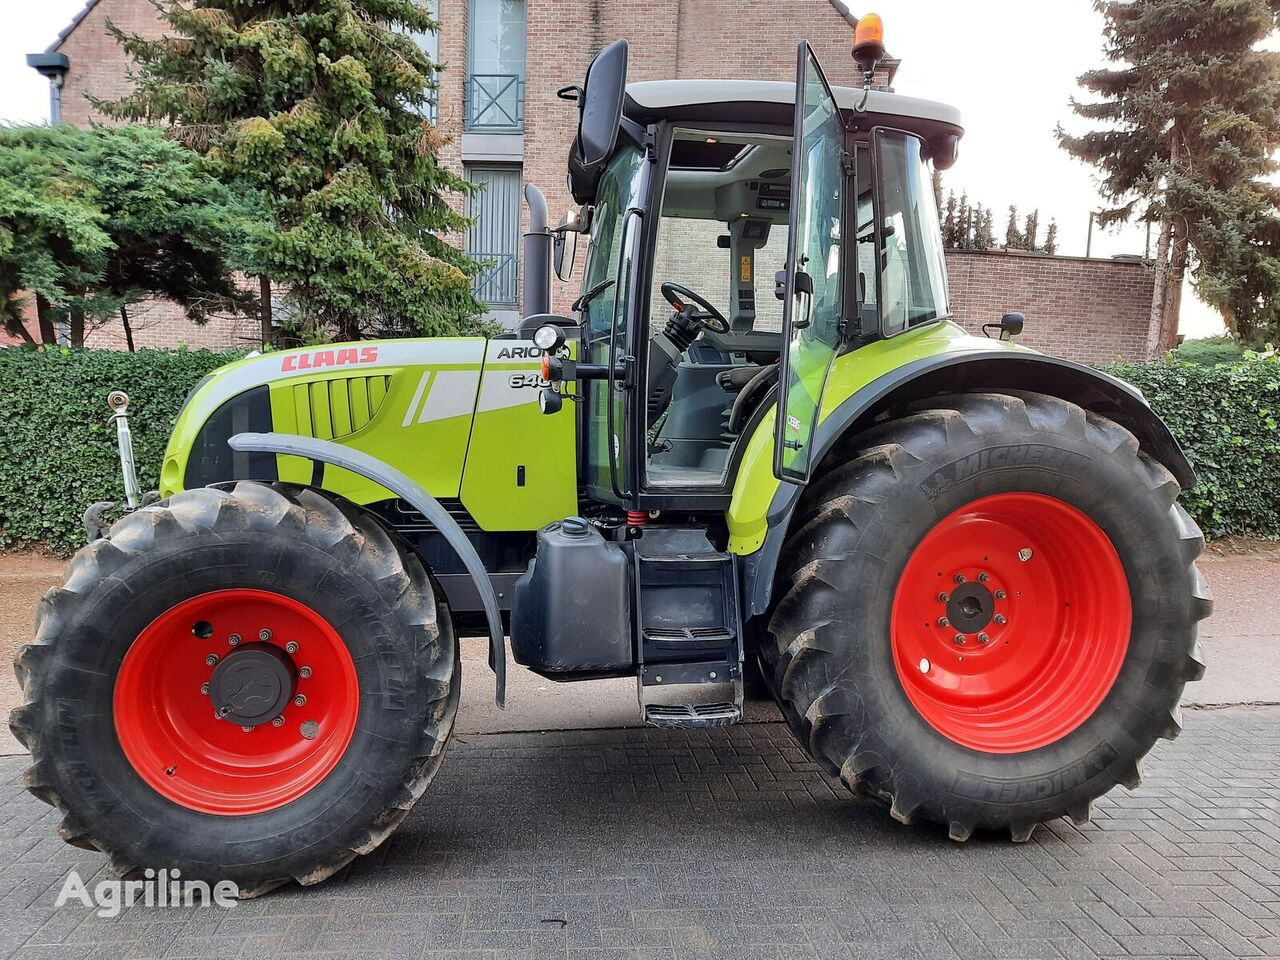 CLAAS ARION 640 wheel tractor